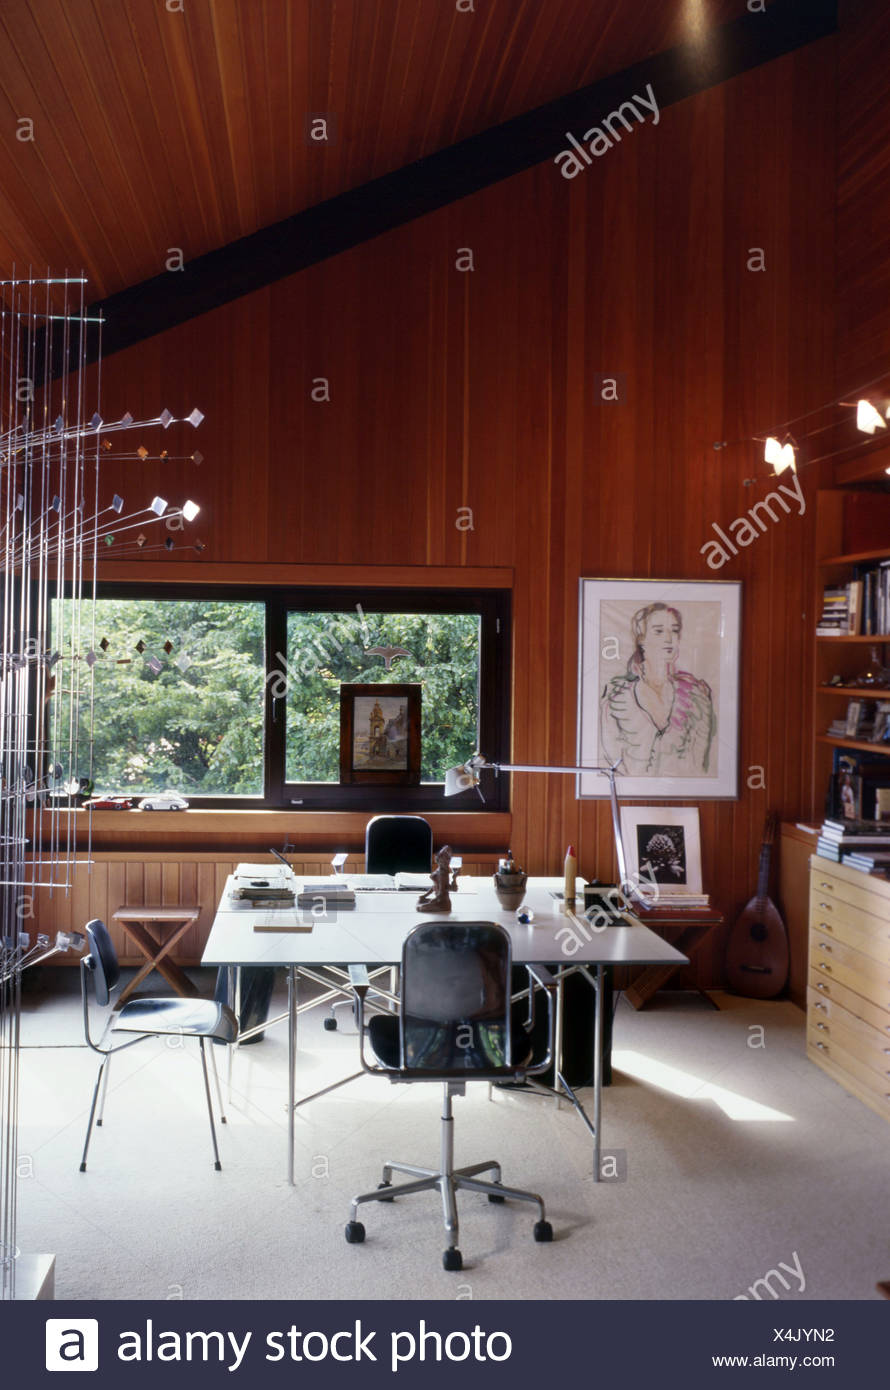 Image of: Room Wood Panel Walls And High Ceiling Artwork On Wall Modern Style Table And Chairs Bookshelves And Mandolin On Floor Stock Photo Alamy